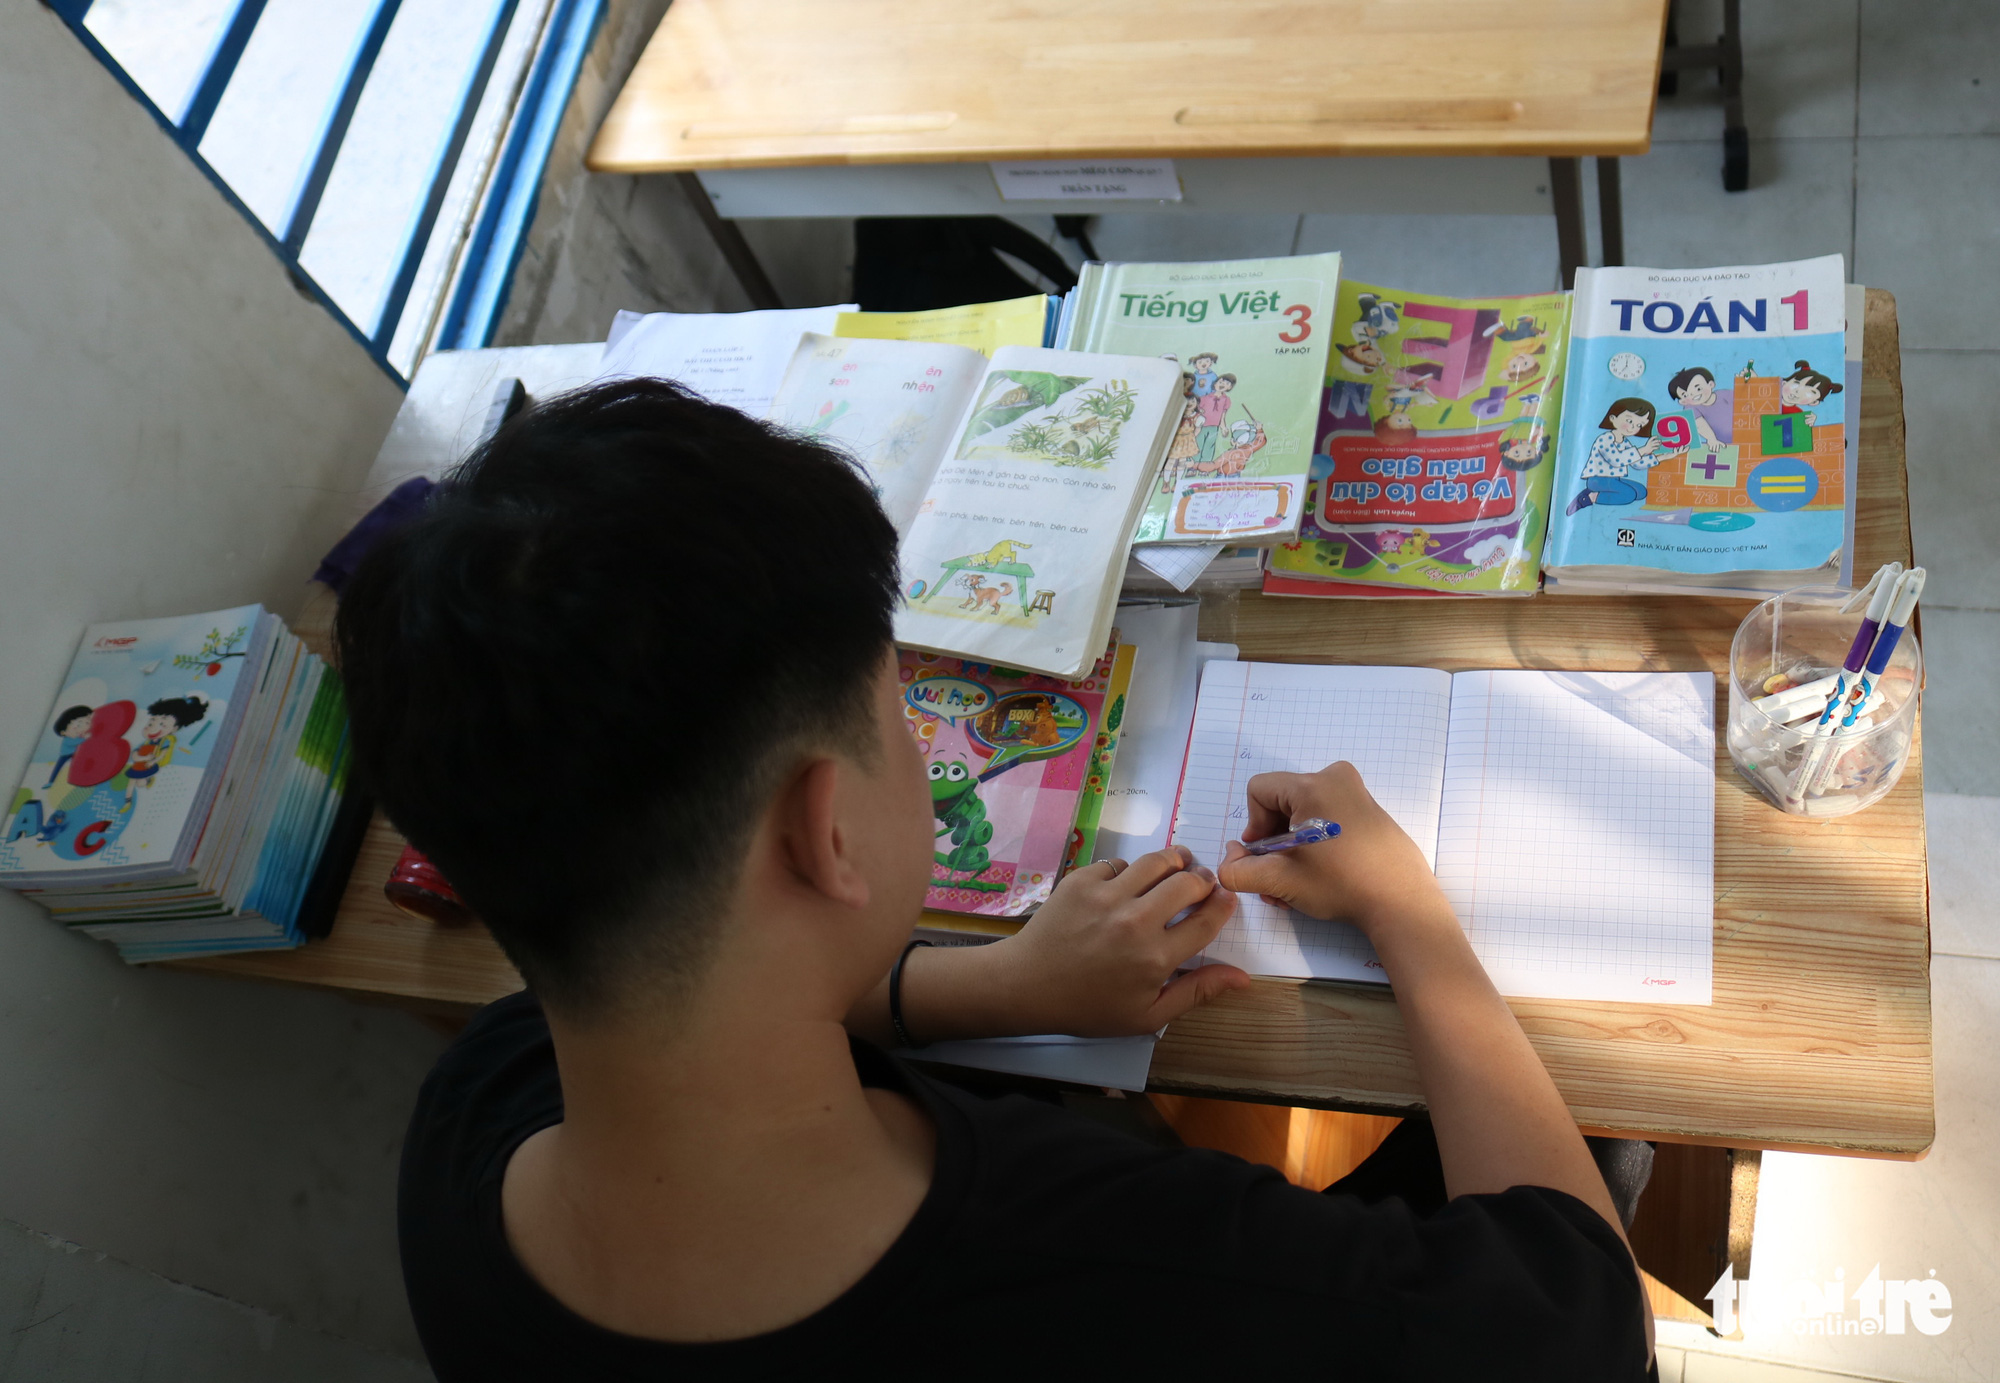 Phan Trung Hai works in the teacher's seat in this special class for underprivileged children in Ho Chi Minh City, Vietnam. Photo: Ngoc Phuong / Tuoi Tre